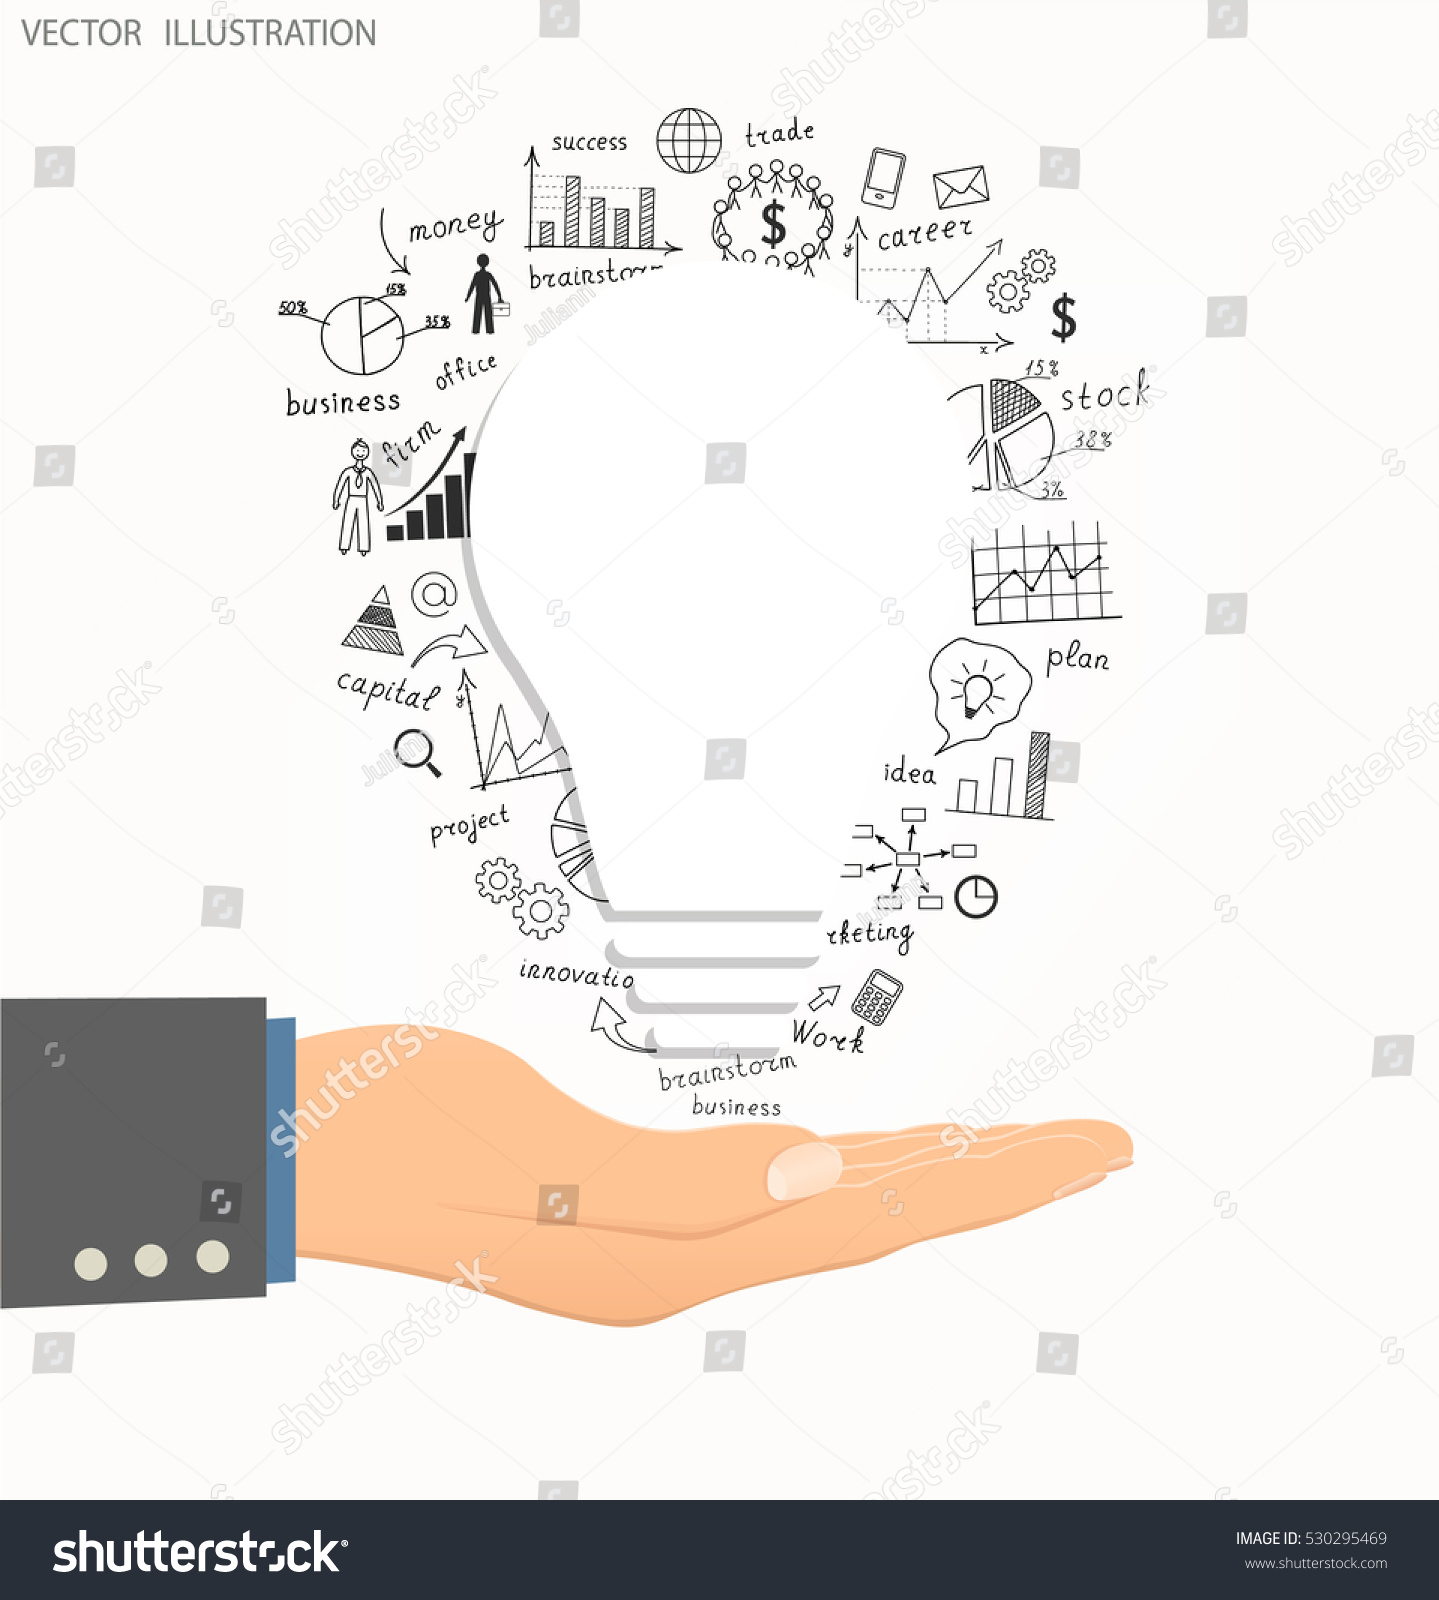 hight resolution of business concept light bulb with drawing business success strategy plan idea hand holding business